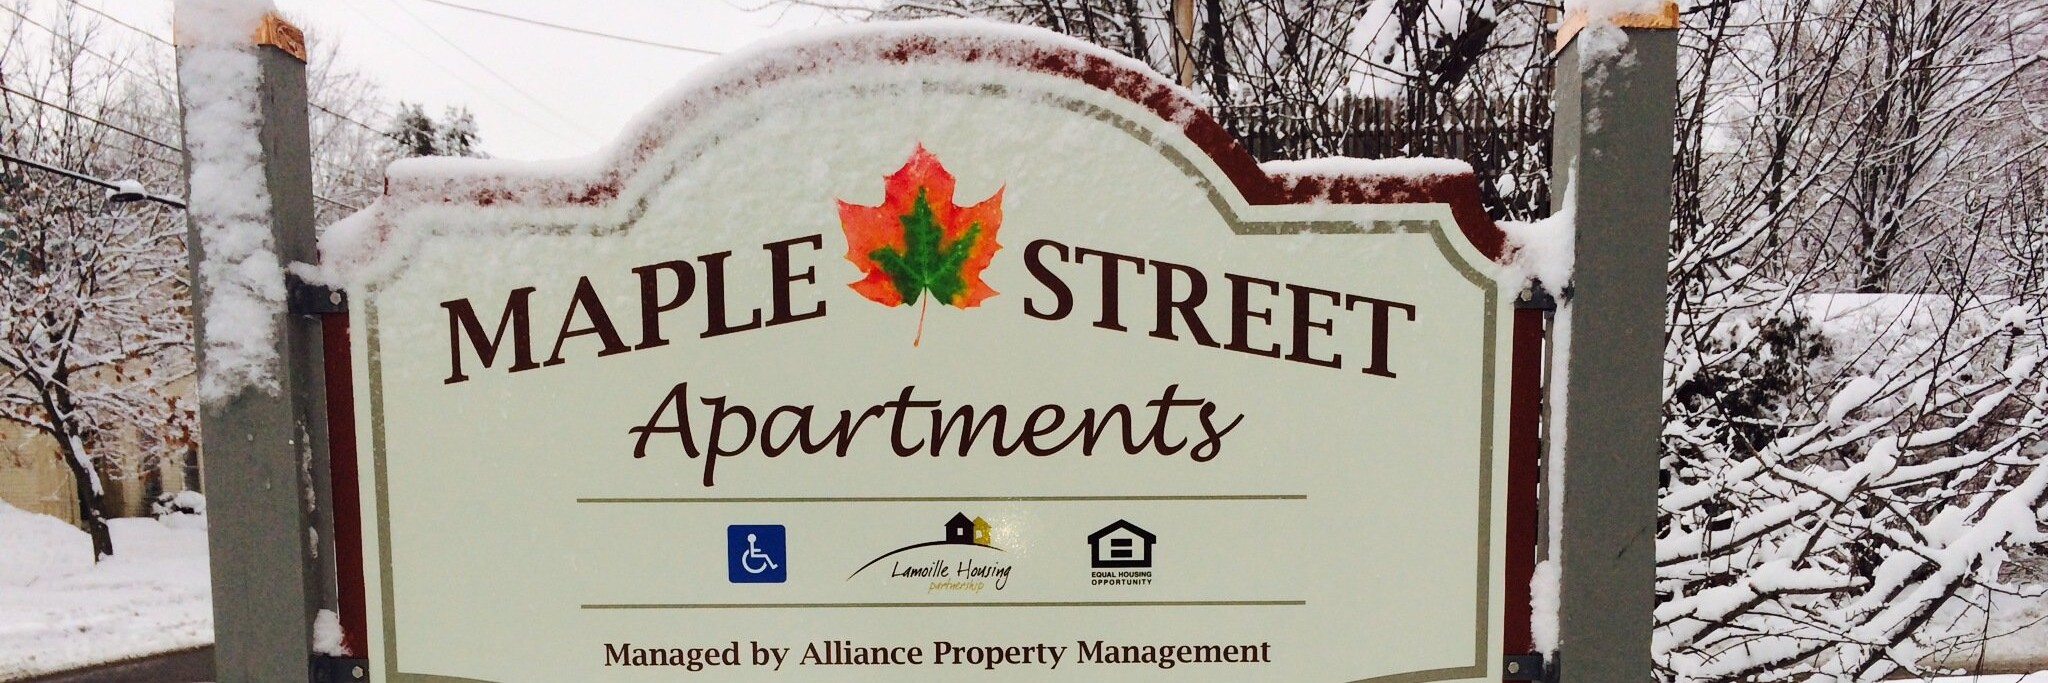 maple street apartments sign